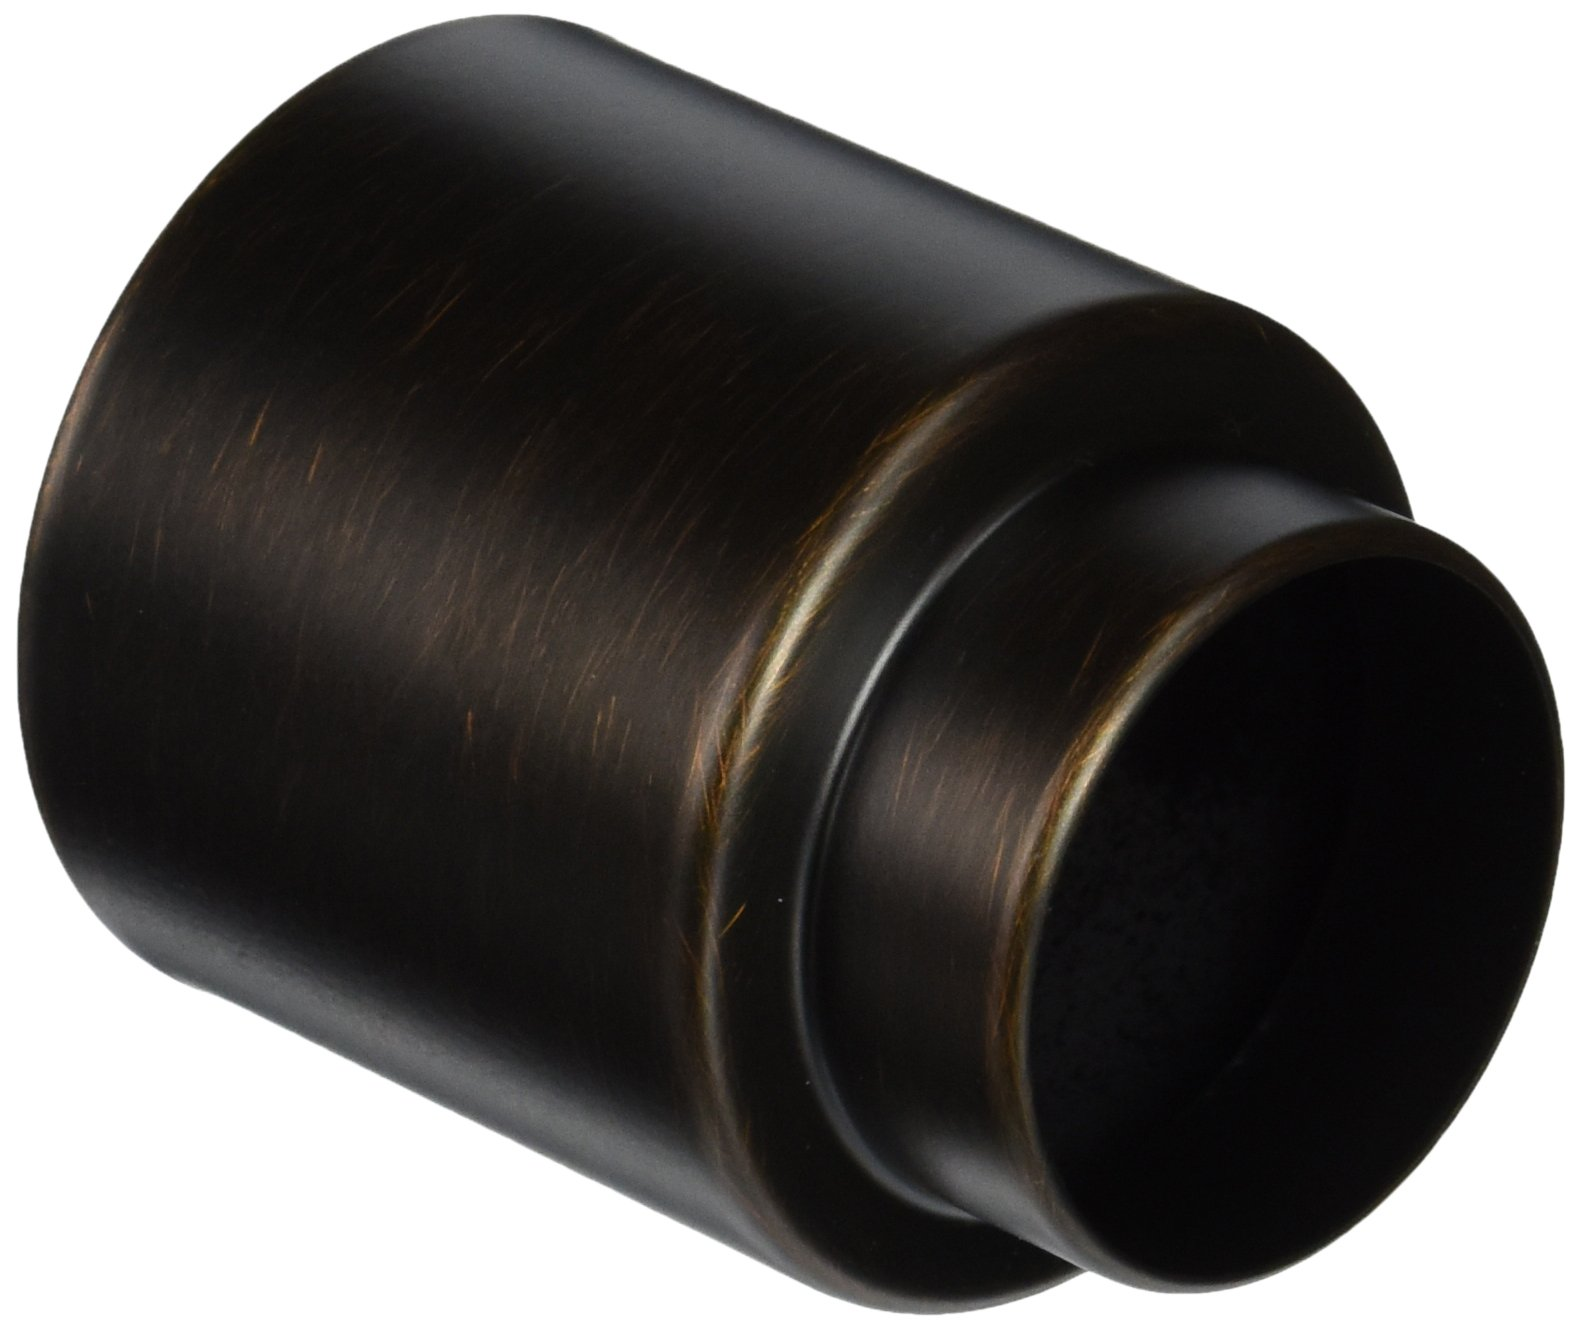 Delta Faucet RP50879RB Trim Sleeve for Tub and Shower, Venetian Bronze